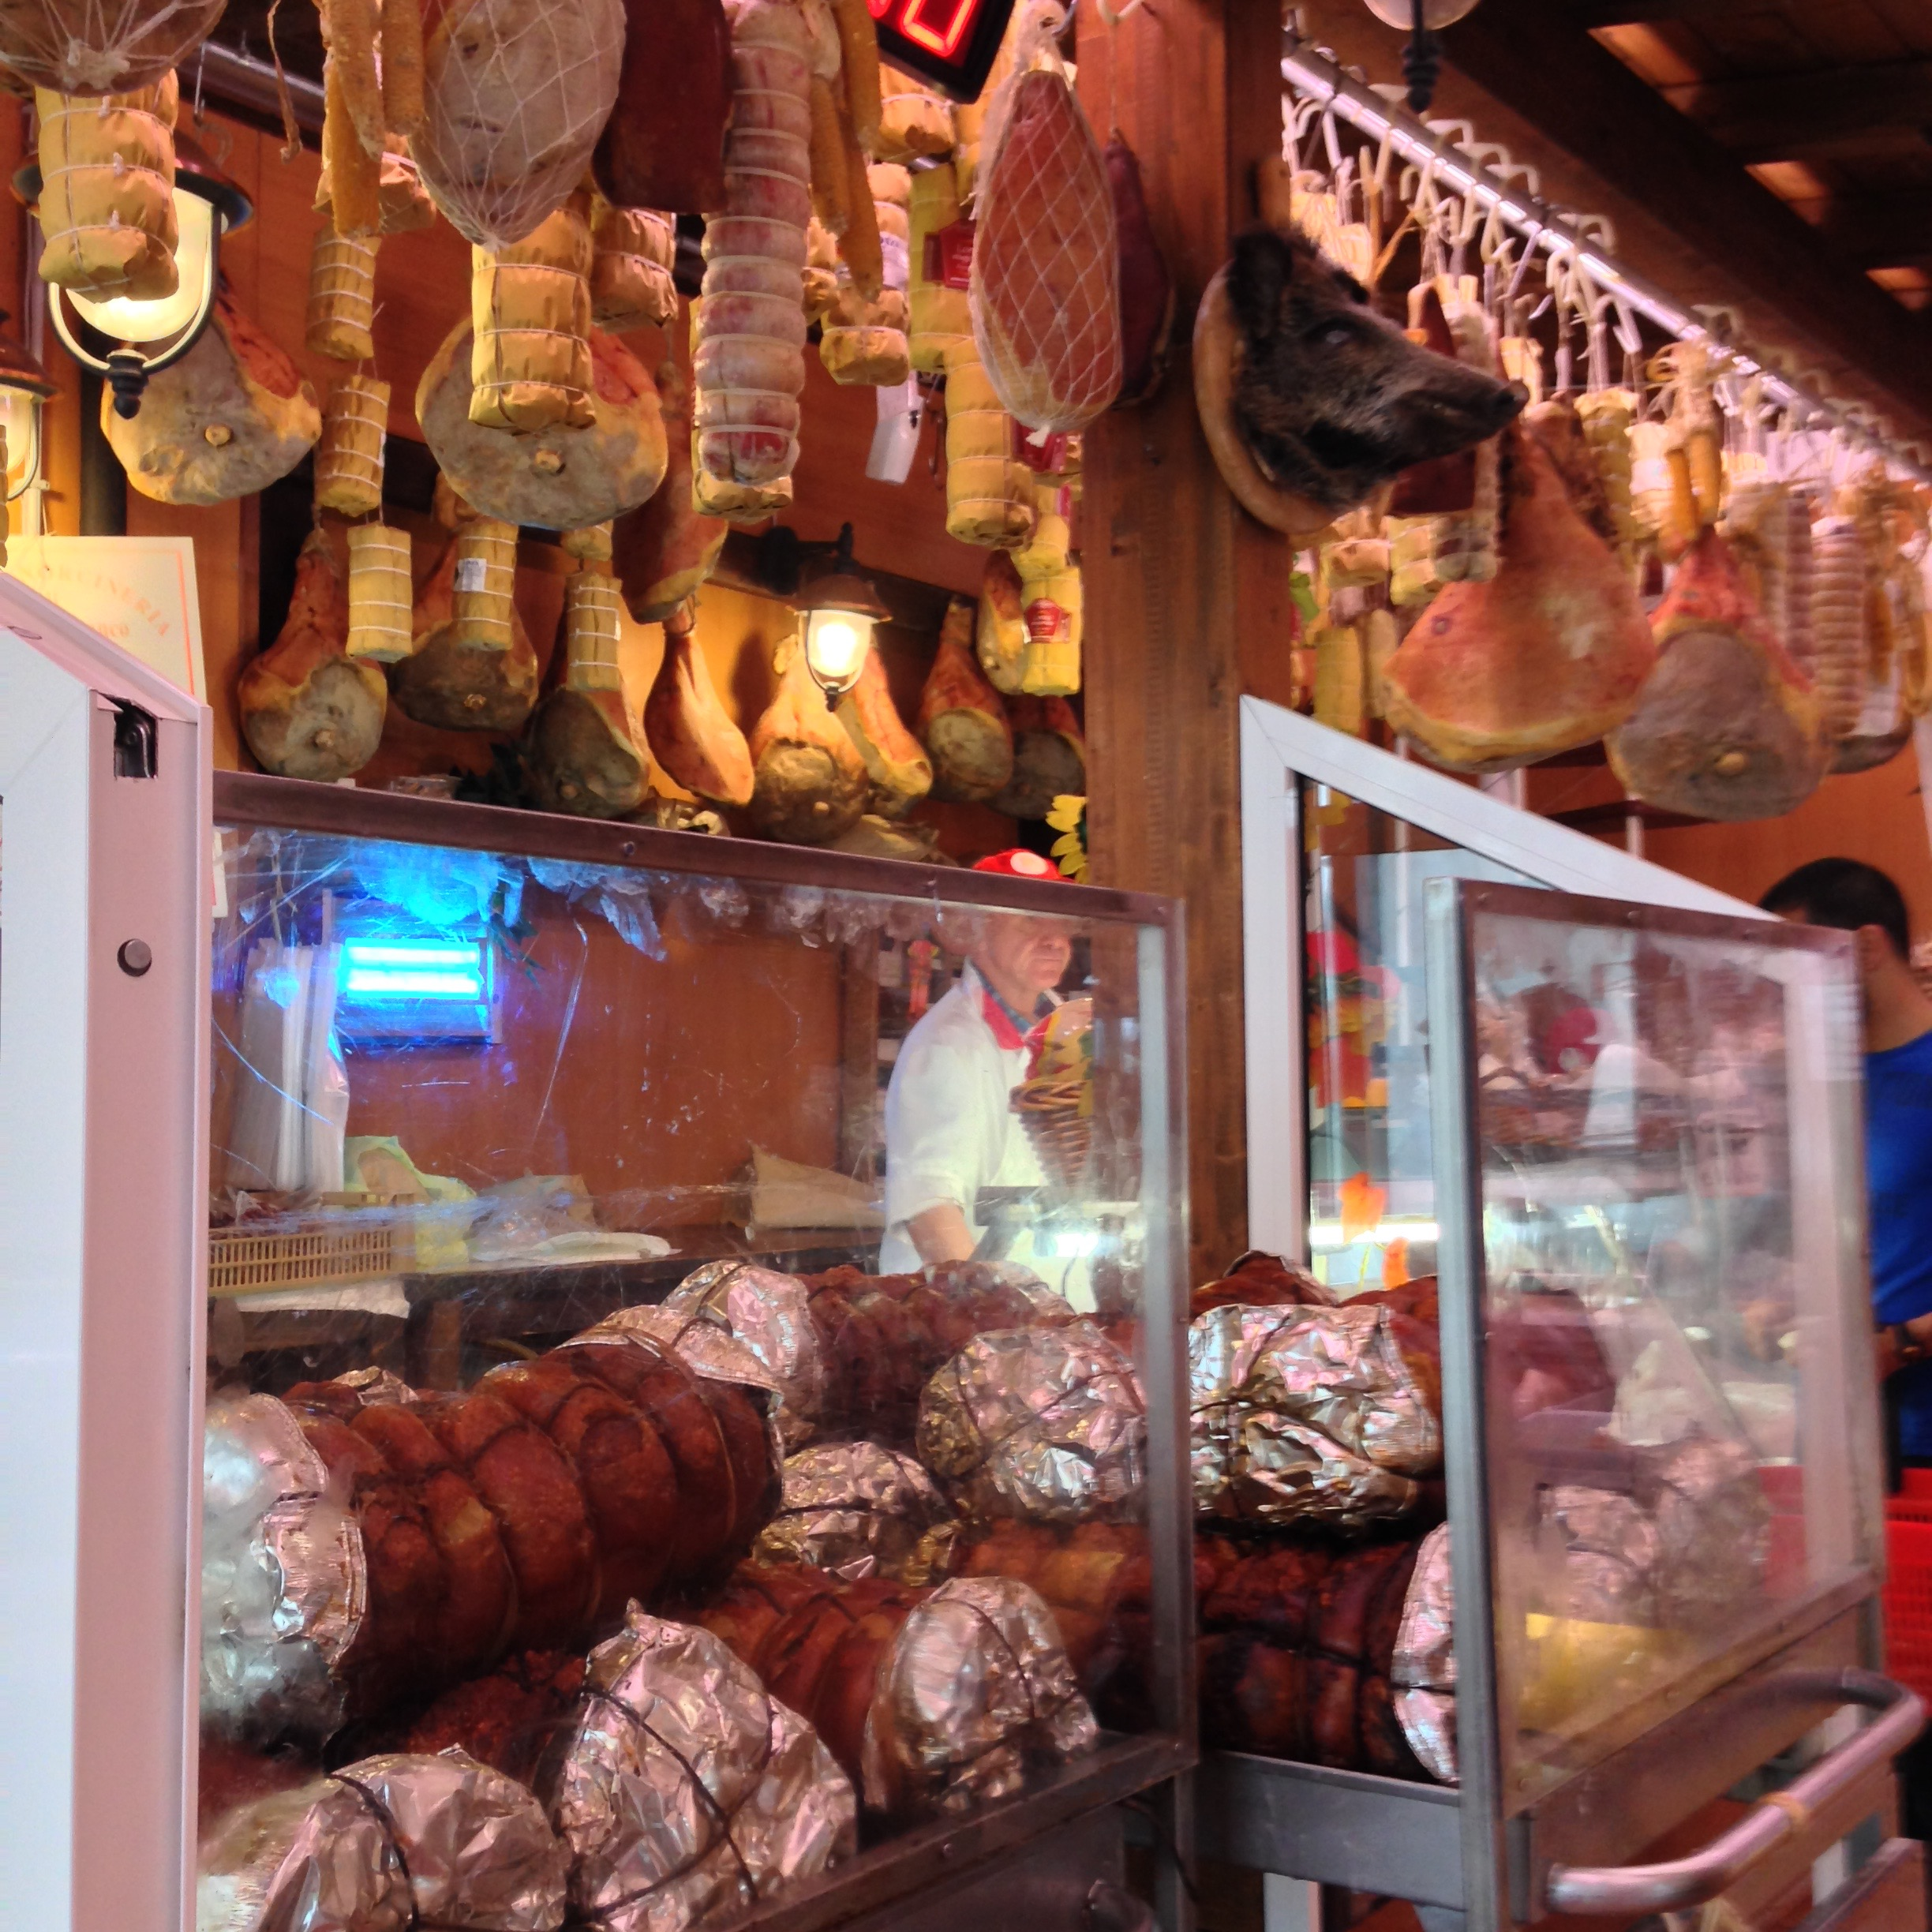 I may or may not buy prosciutto in bulk...